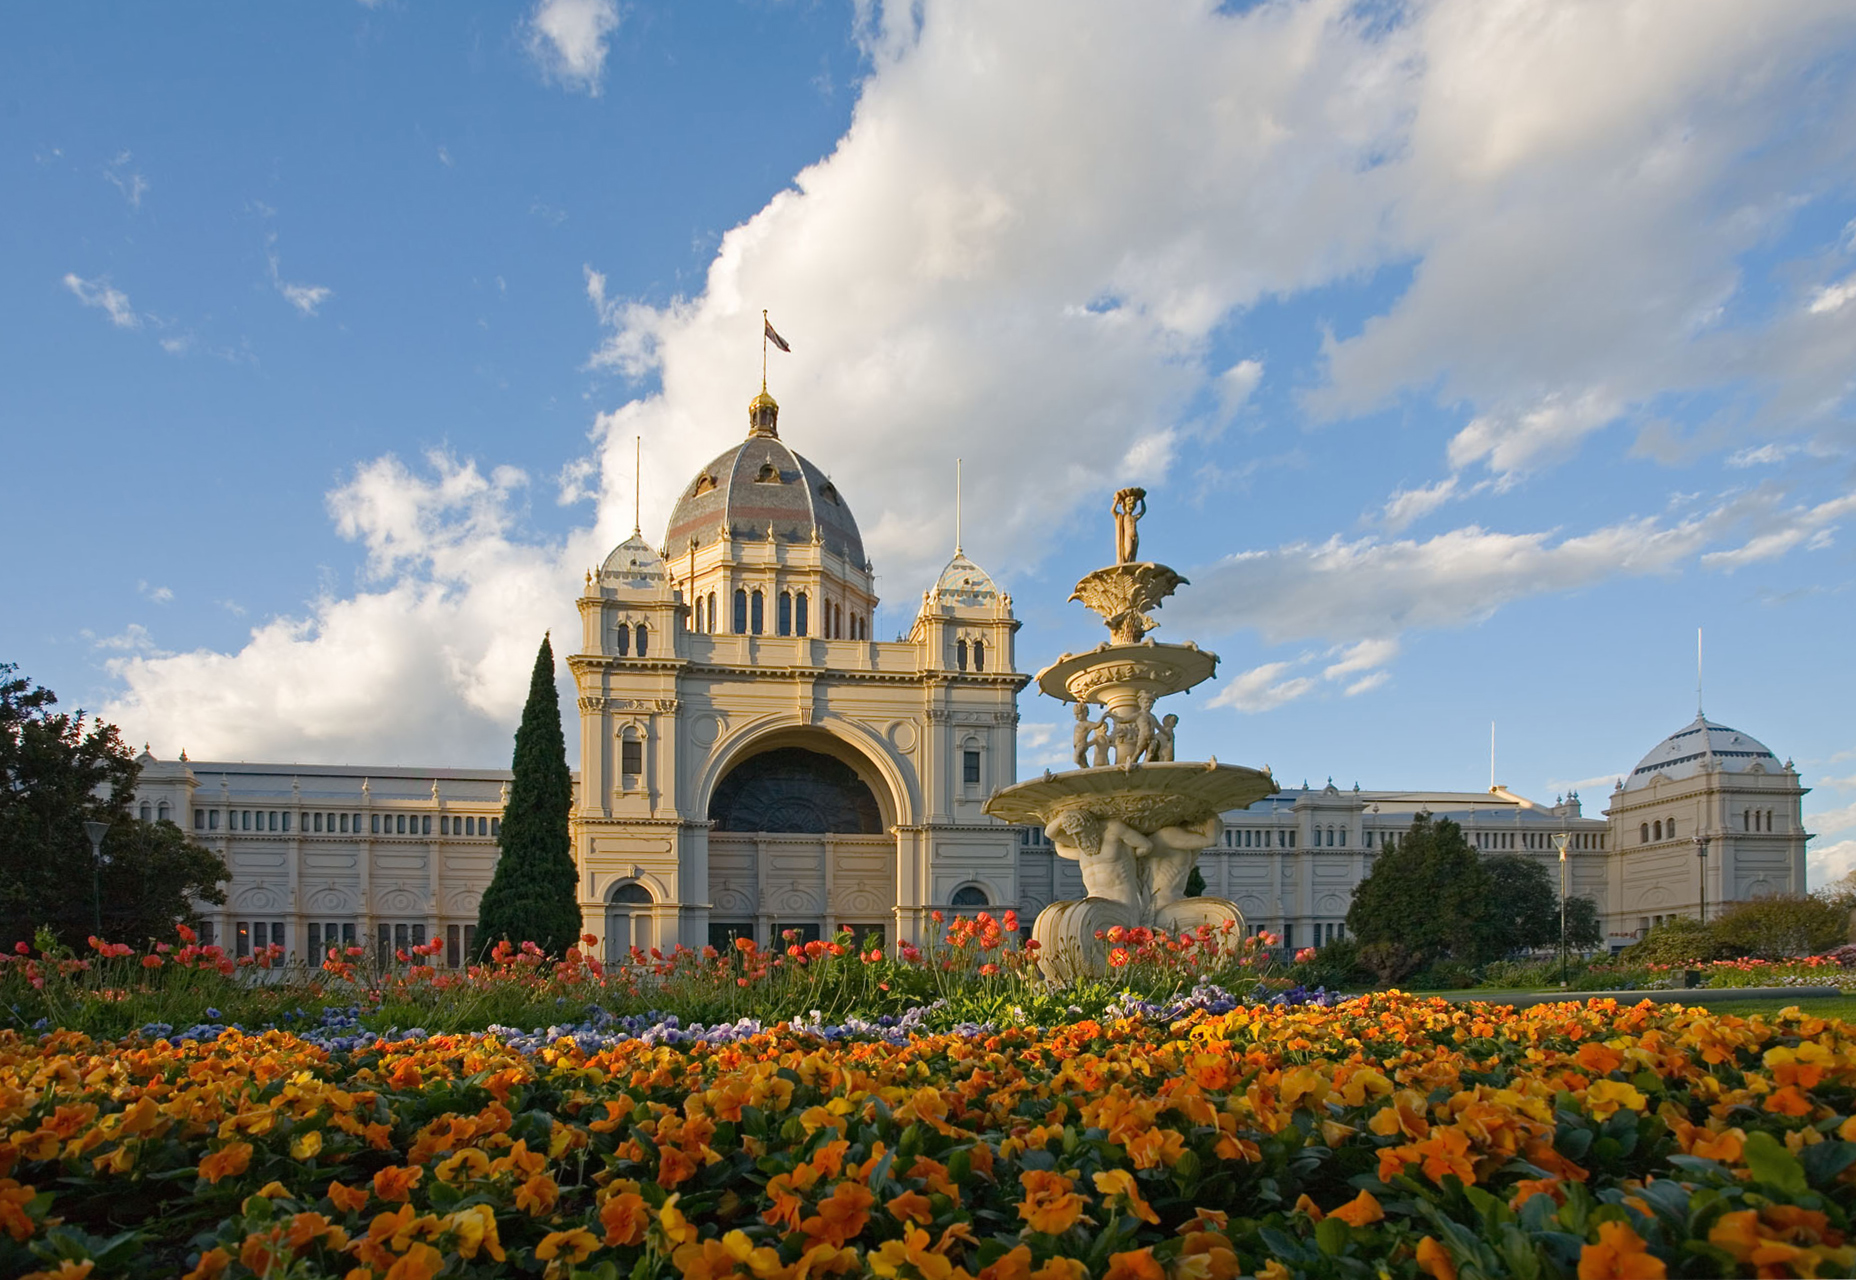 Royal_exhibition_building_tulips_straight.jpg